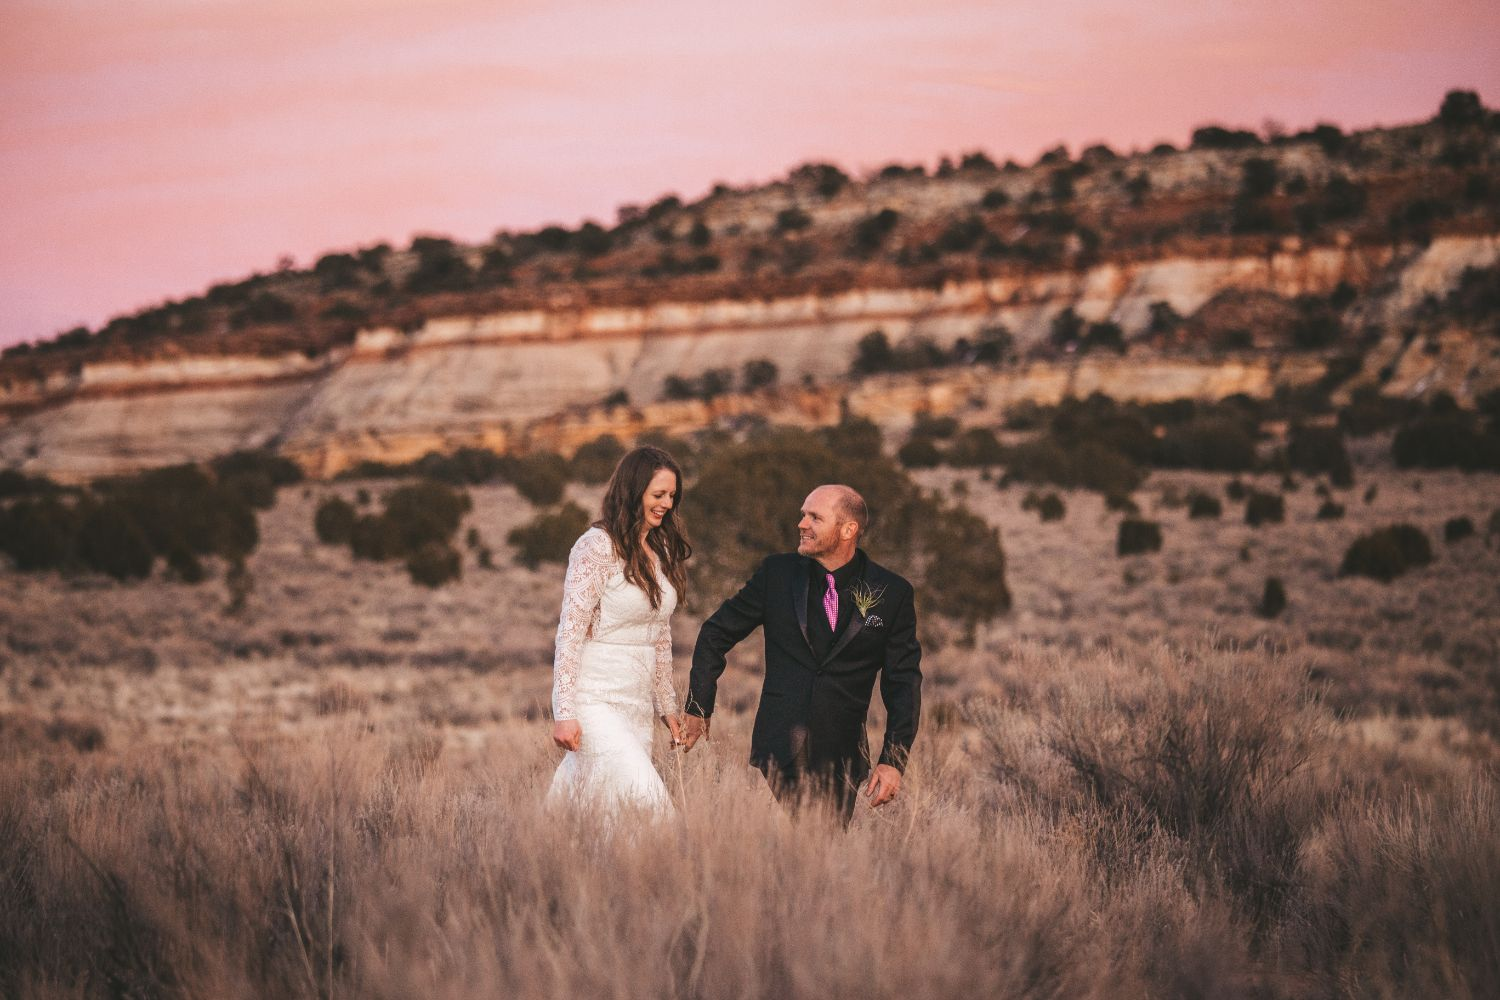 bride-groom-desert-sunset